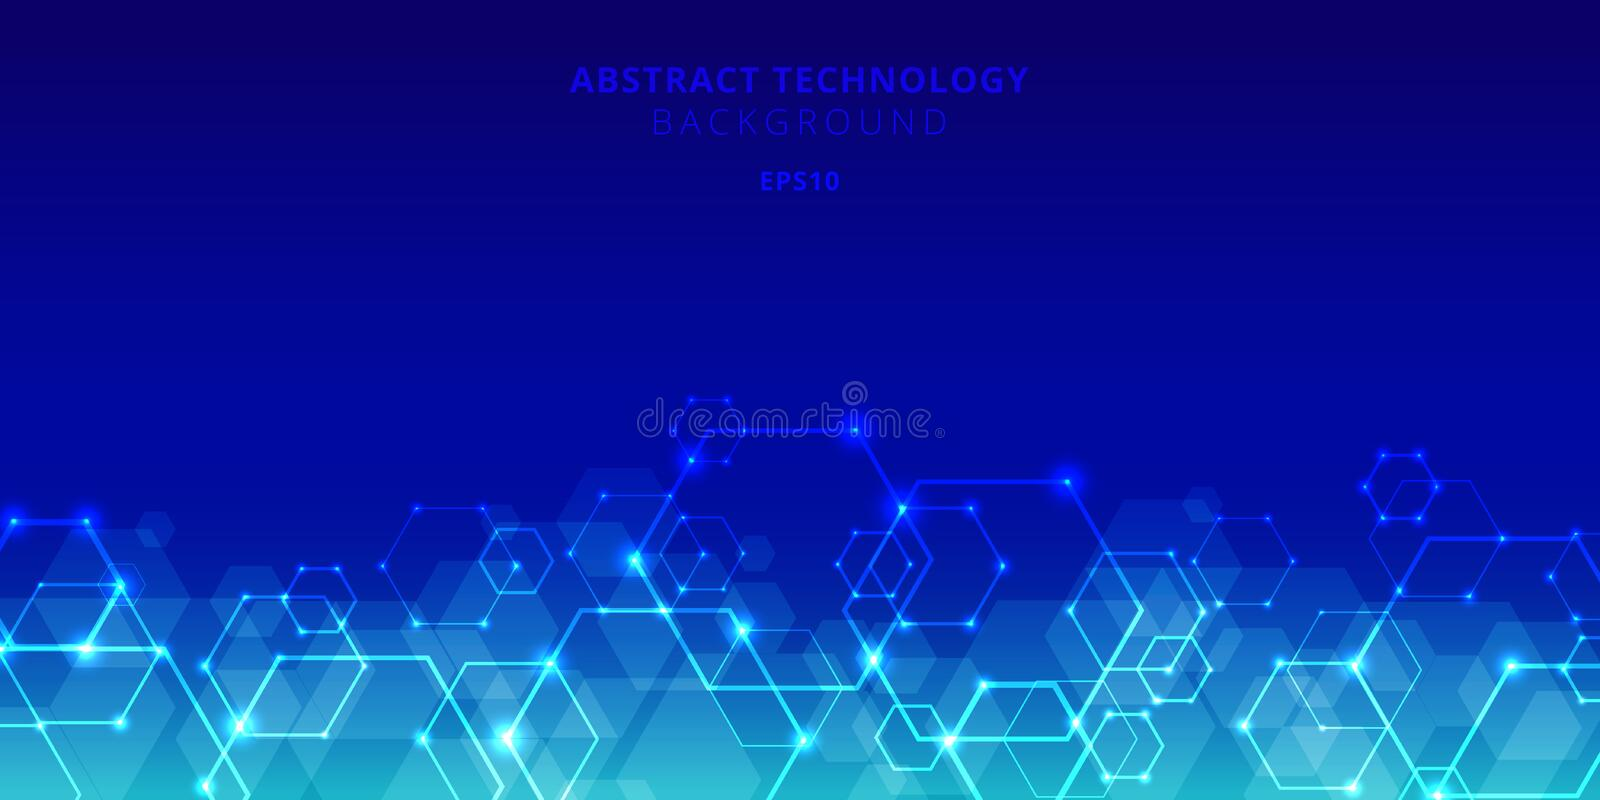 Abstract technology hexagons genetic and social network pattern on blue background. Future geometric template elements hexagon vector illustration